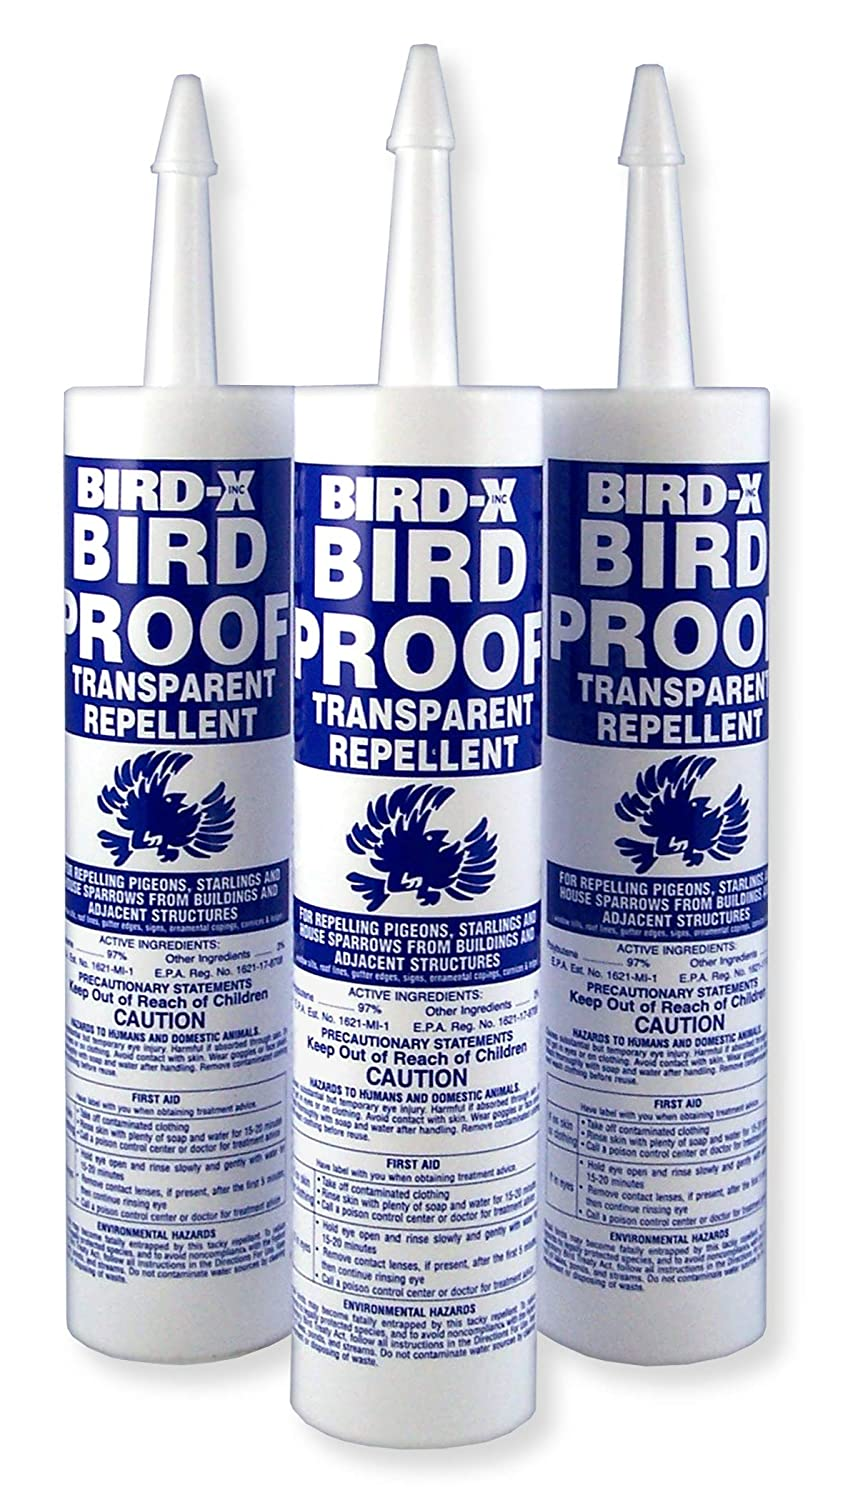 Bird-X Bird-Proof Gel Bird Repellent, Trial Kit of 3 Tubes